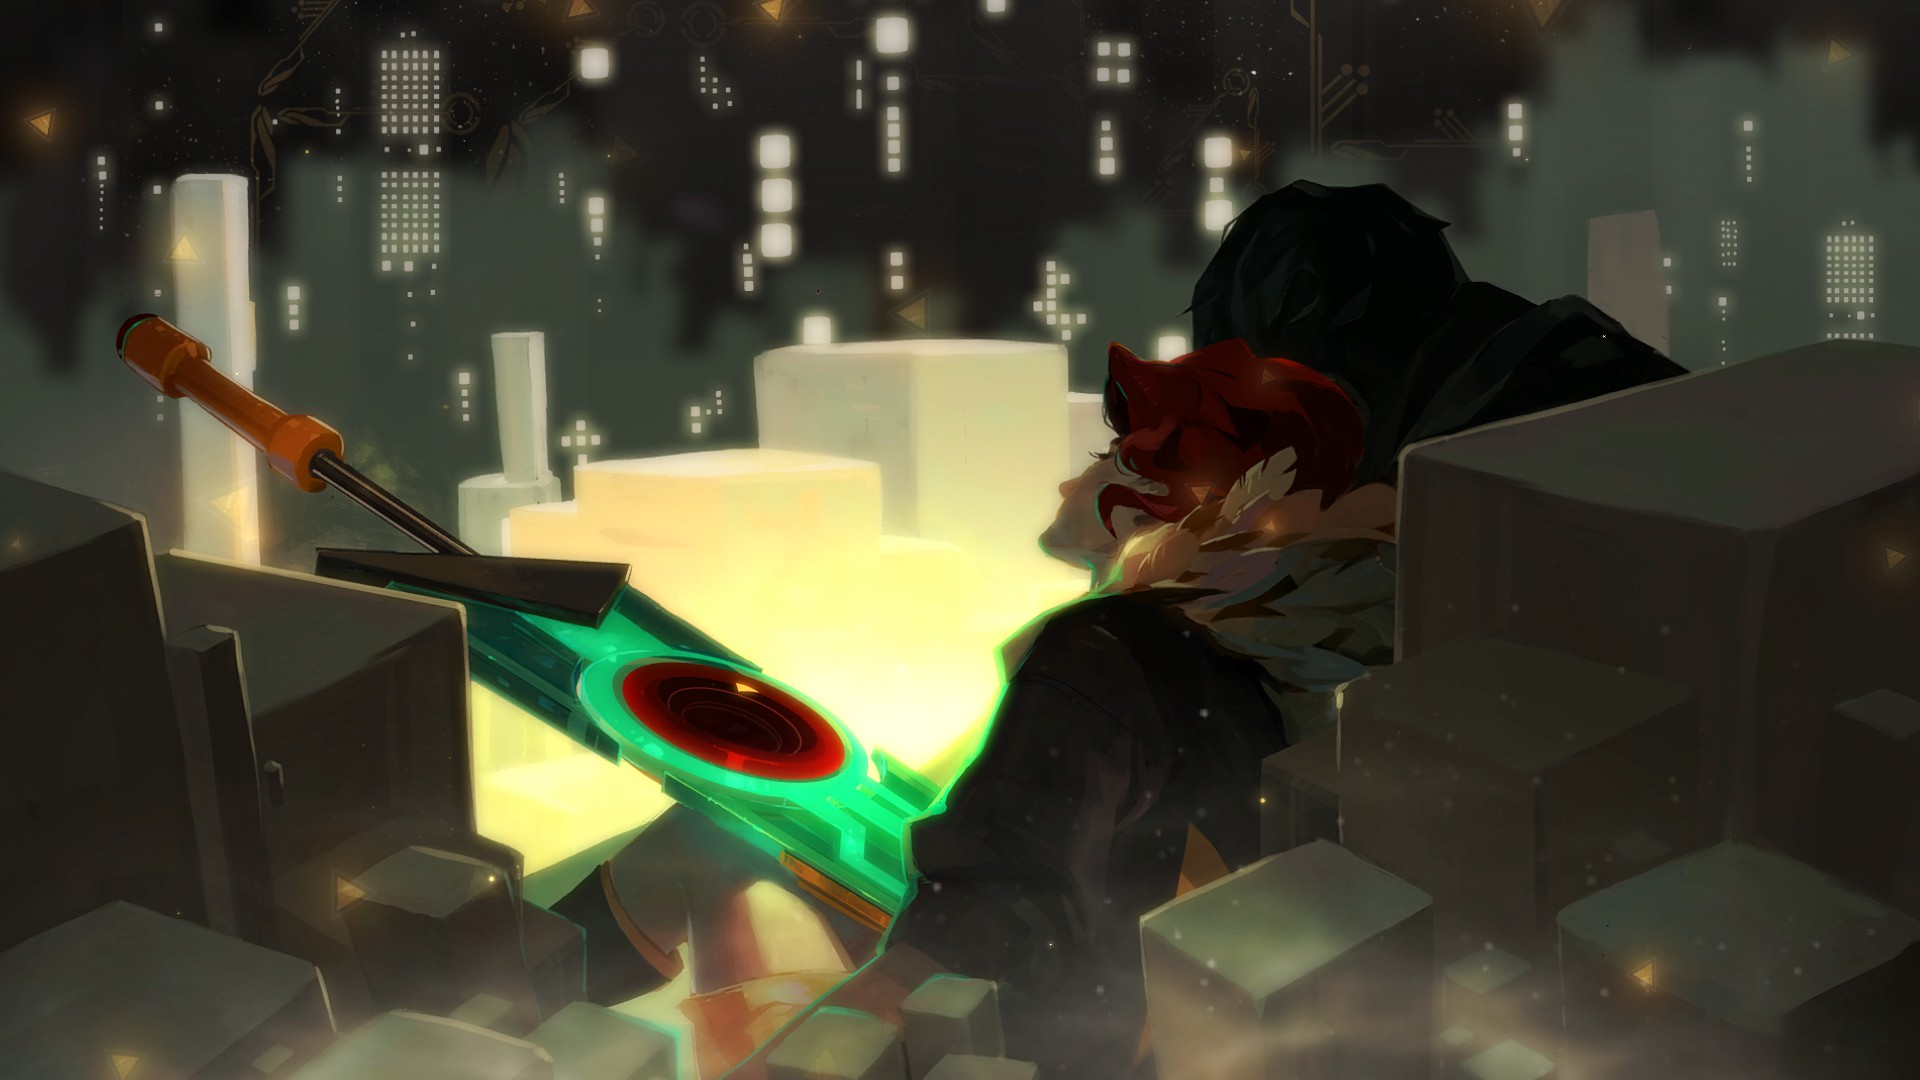 transistor wallpaper images (53) - HD Wallpapers Buzz